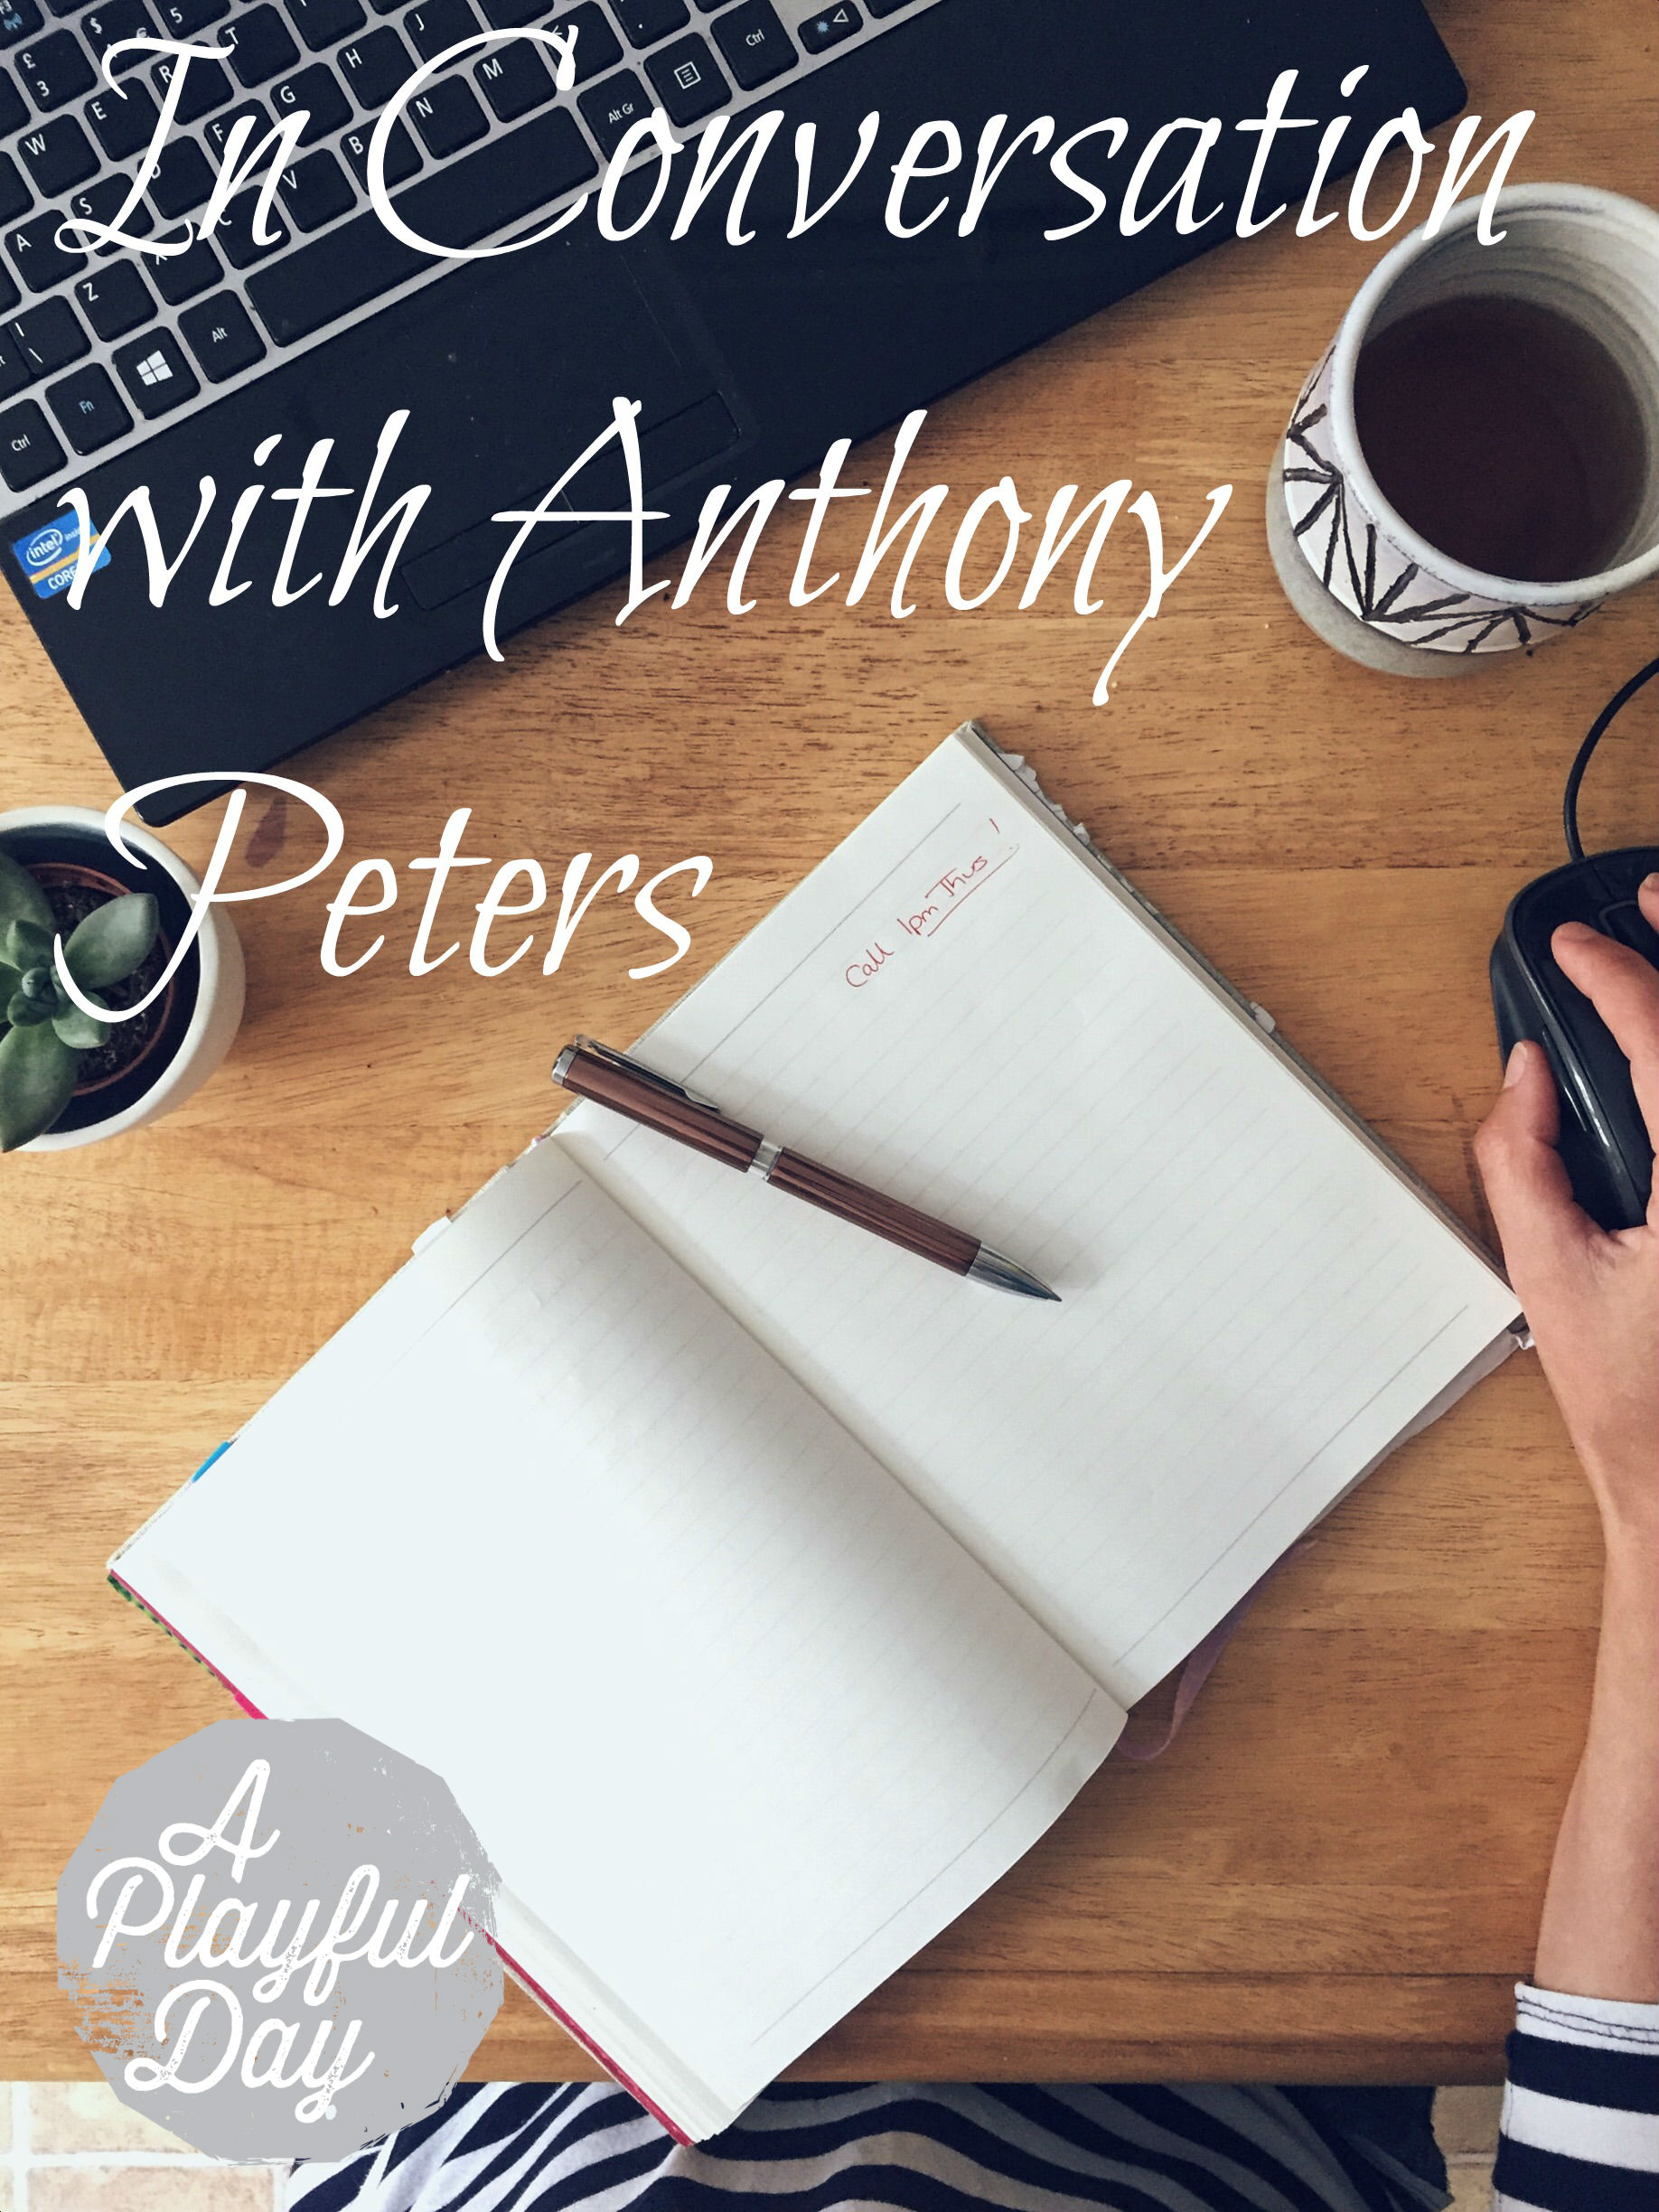 The APD Podcast, Season 3: In Conversation with Anthony Peters